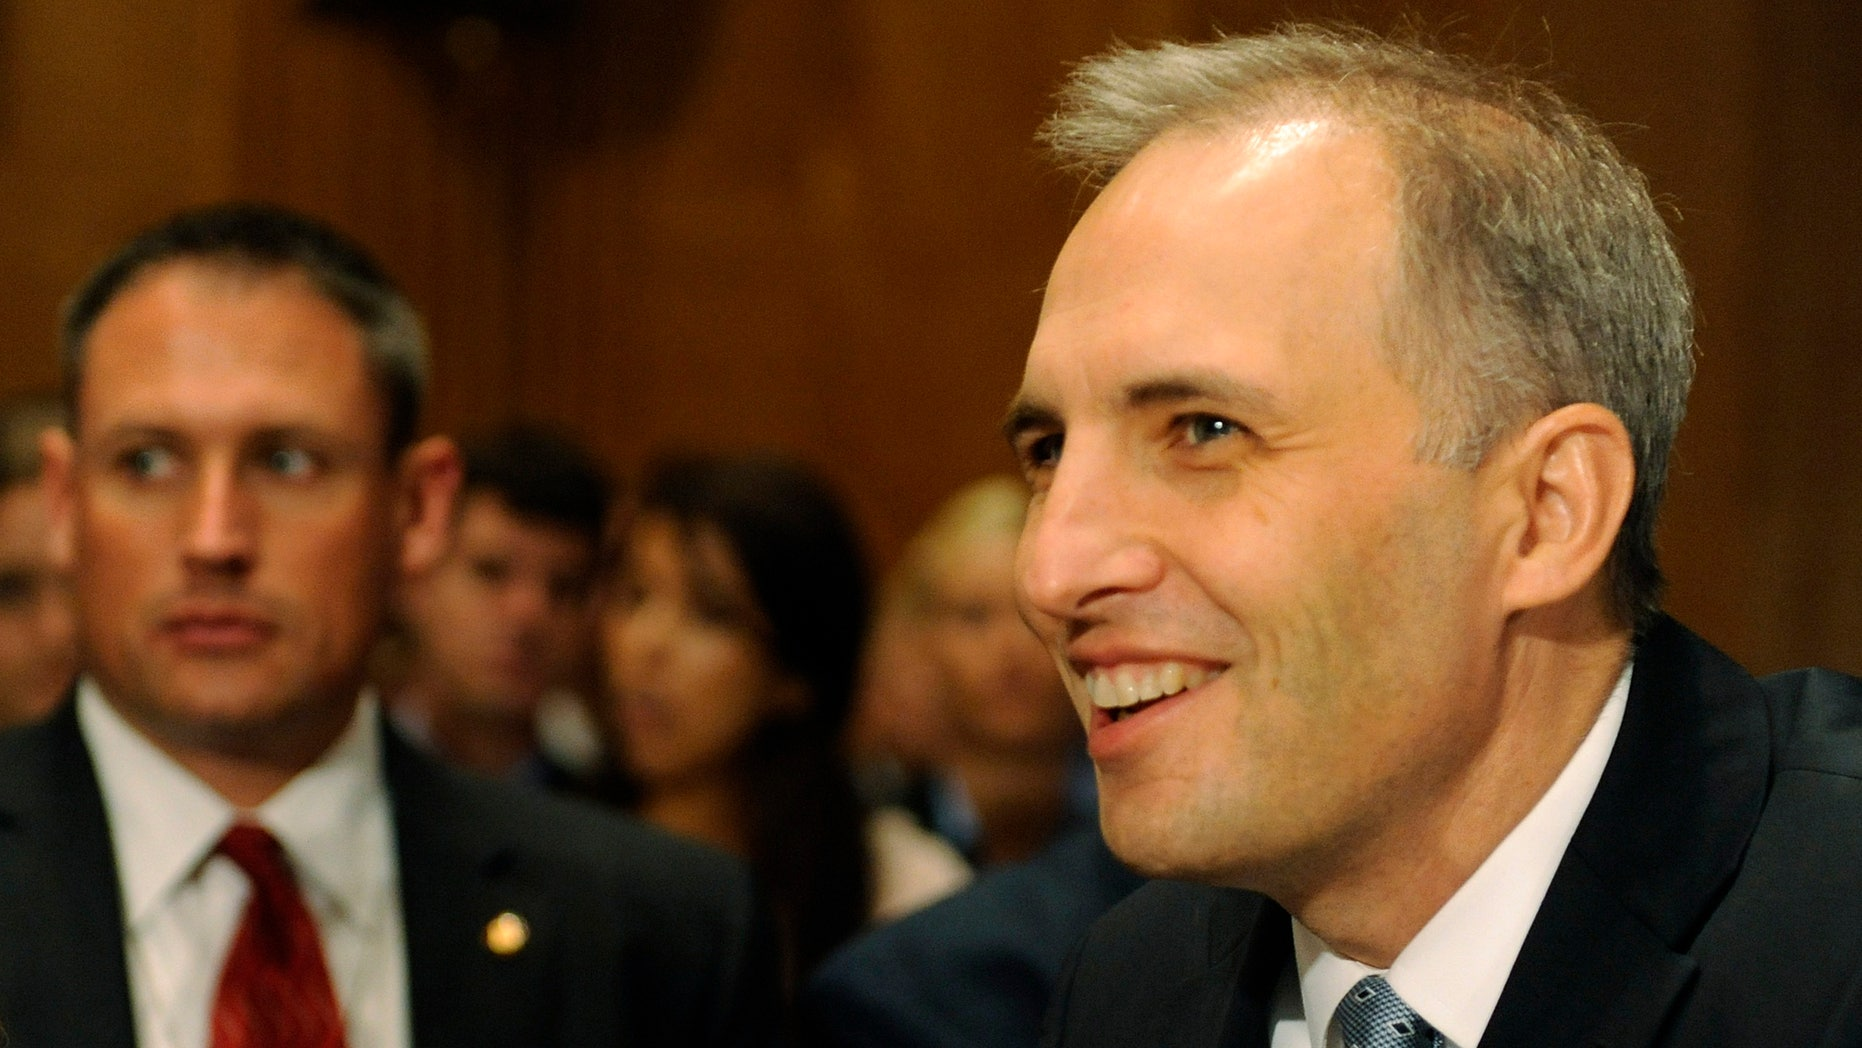 FILE: Sept. 13, 2011: U.S. National Counter Terrorism Center Director Matthew Olsen at a Capitol Hill hearing in Washington, D.C.